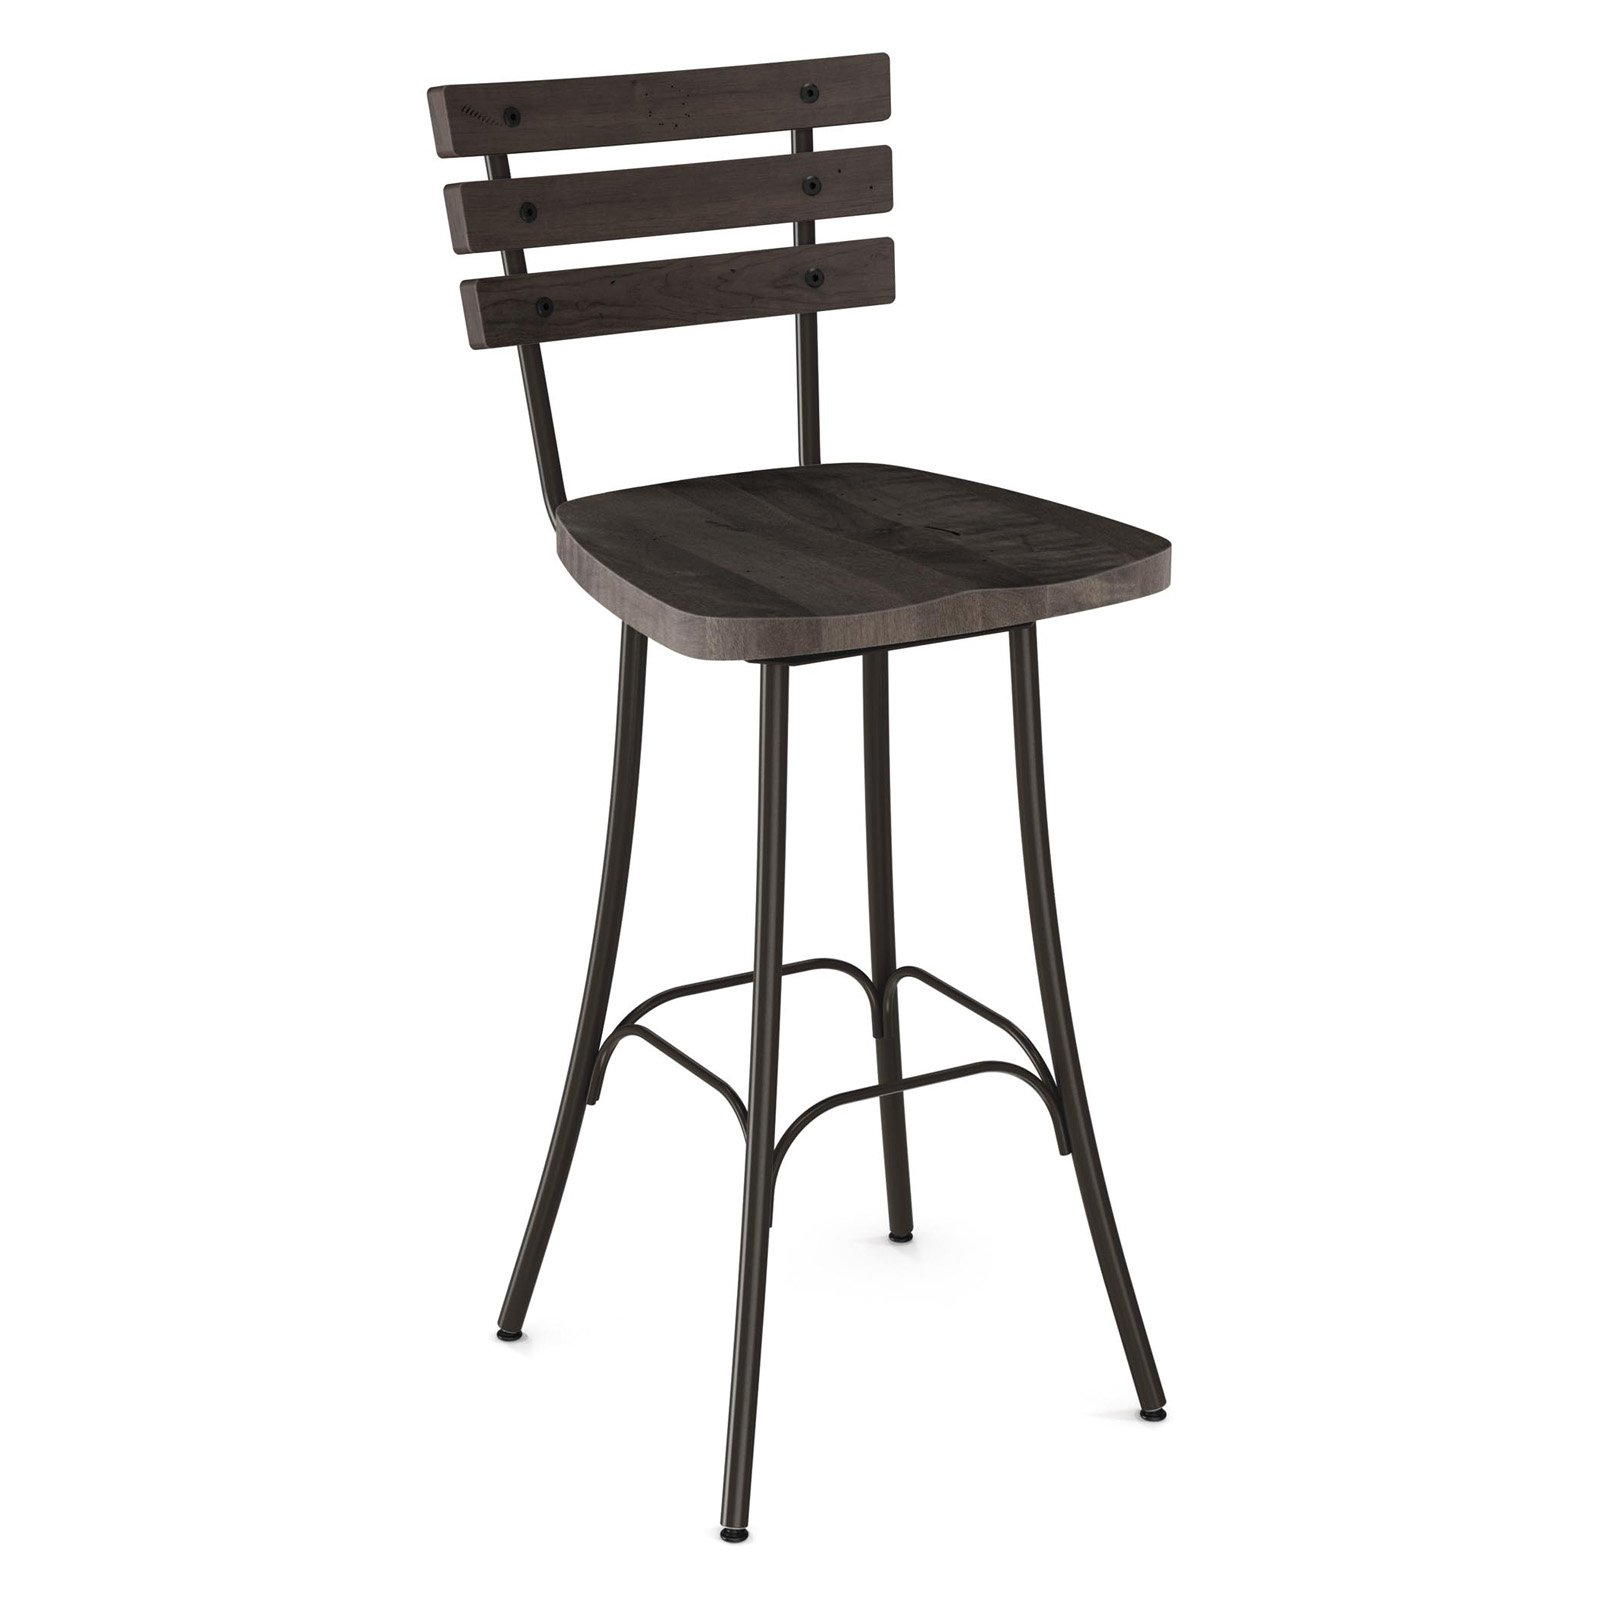 Amisco Dock 26 in. Swivel Counter Stool